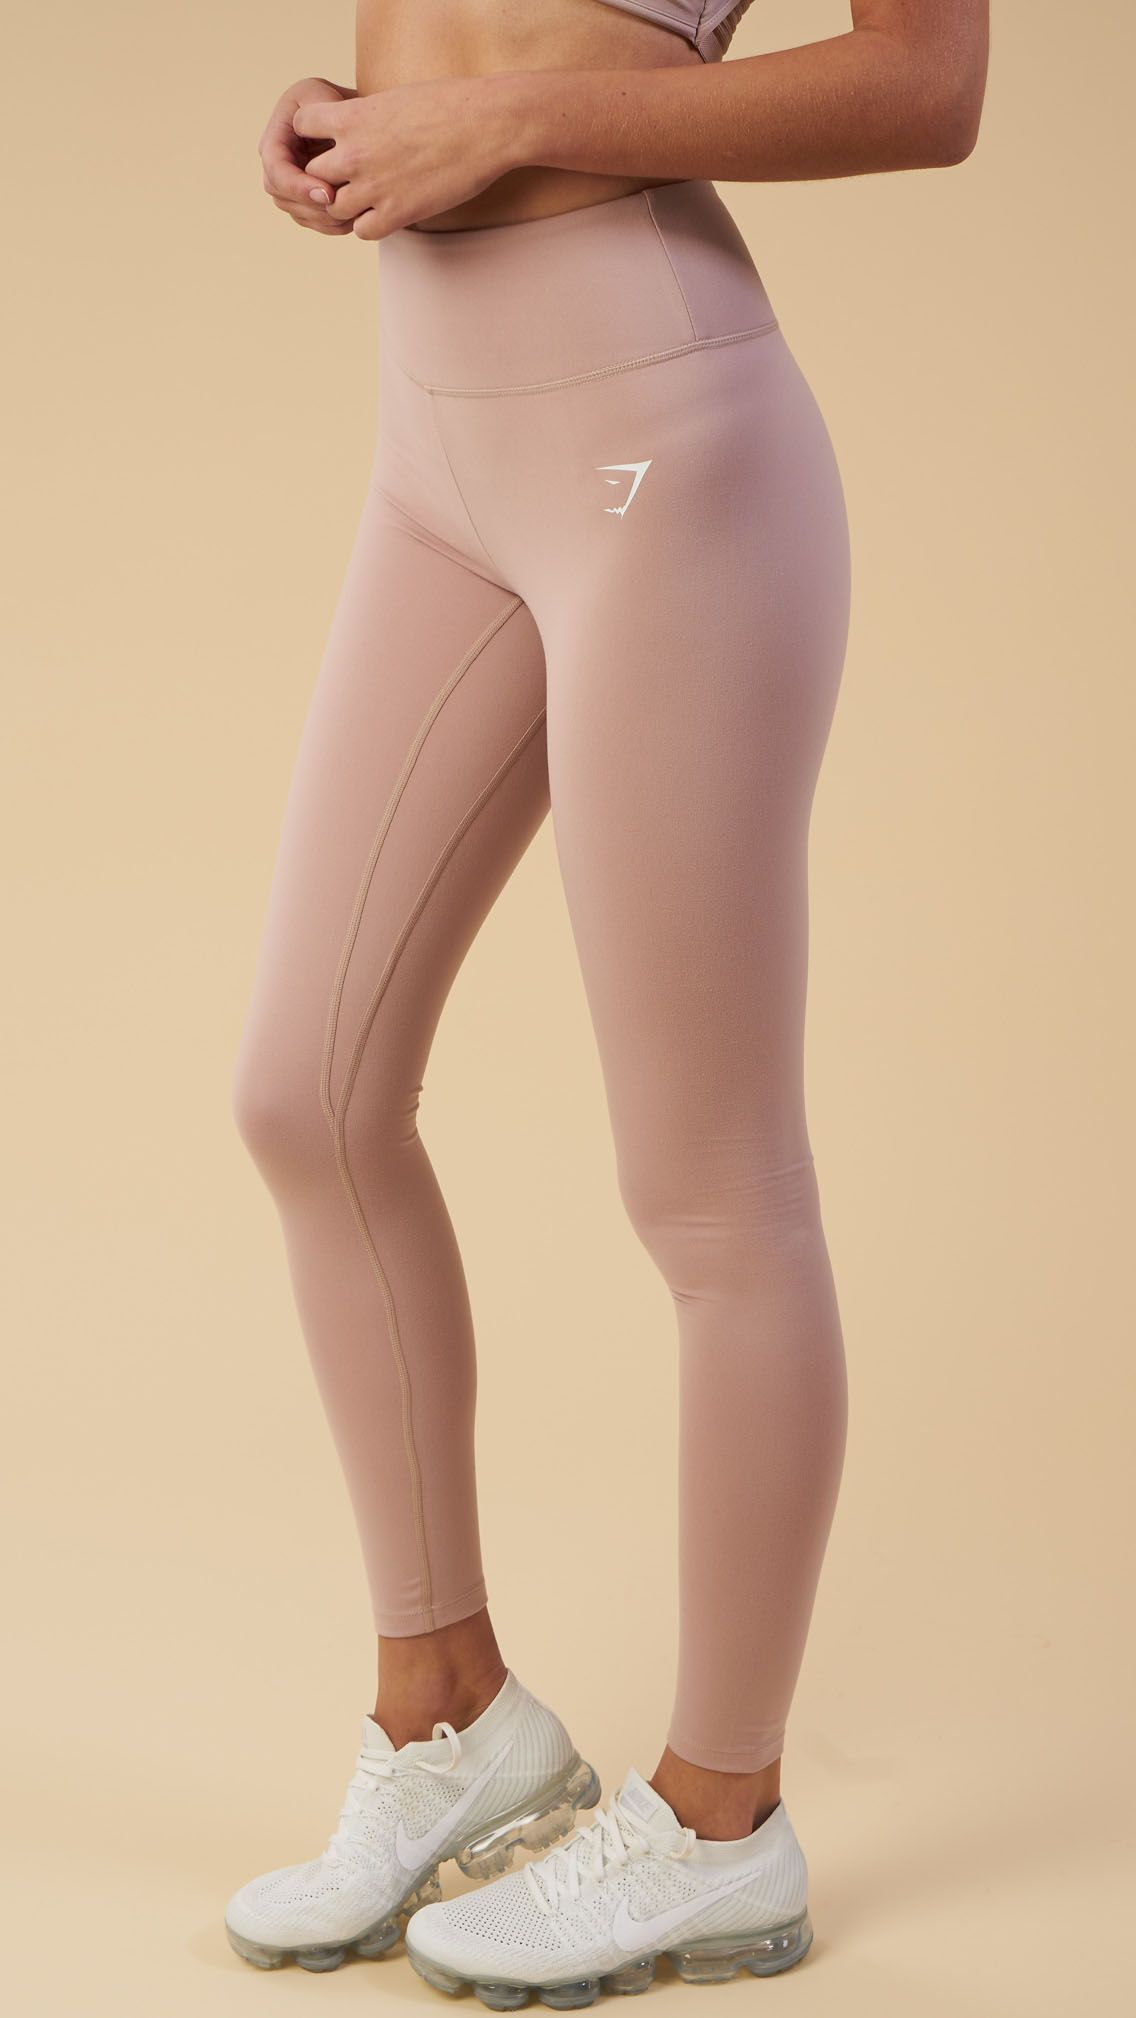 89eb854222761 Designed with ultimate comfort in mind, the Dreamy Leggings have been  created with our softest material blend yet to ensure an irritation-free  workout, ...